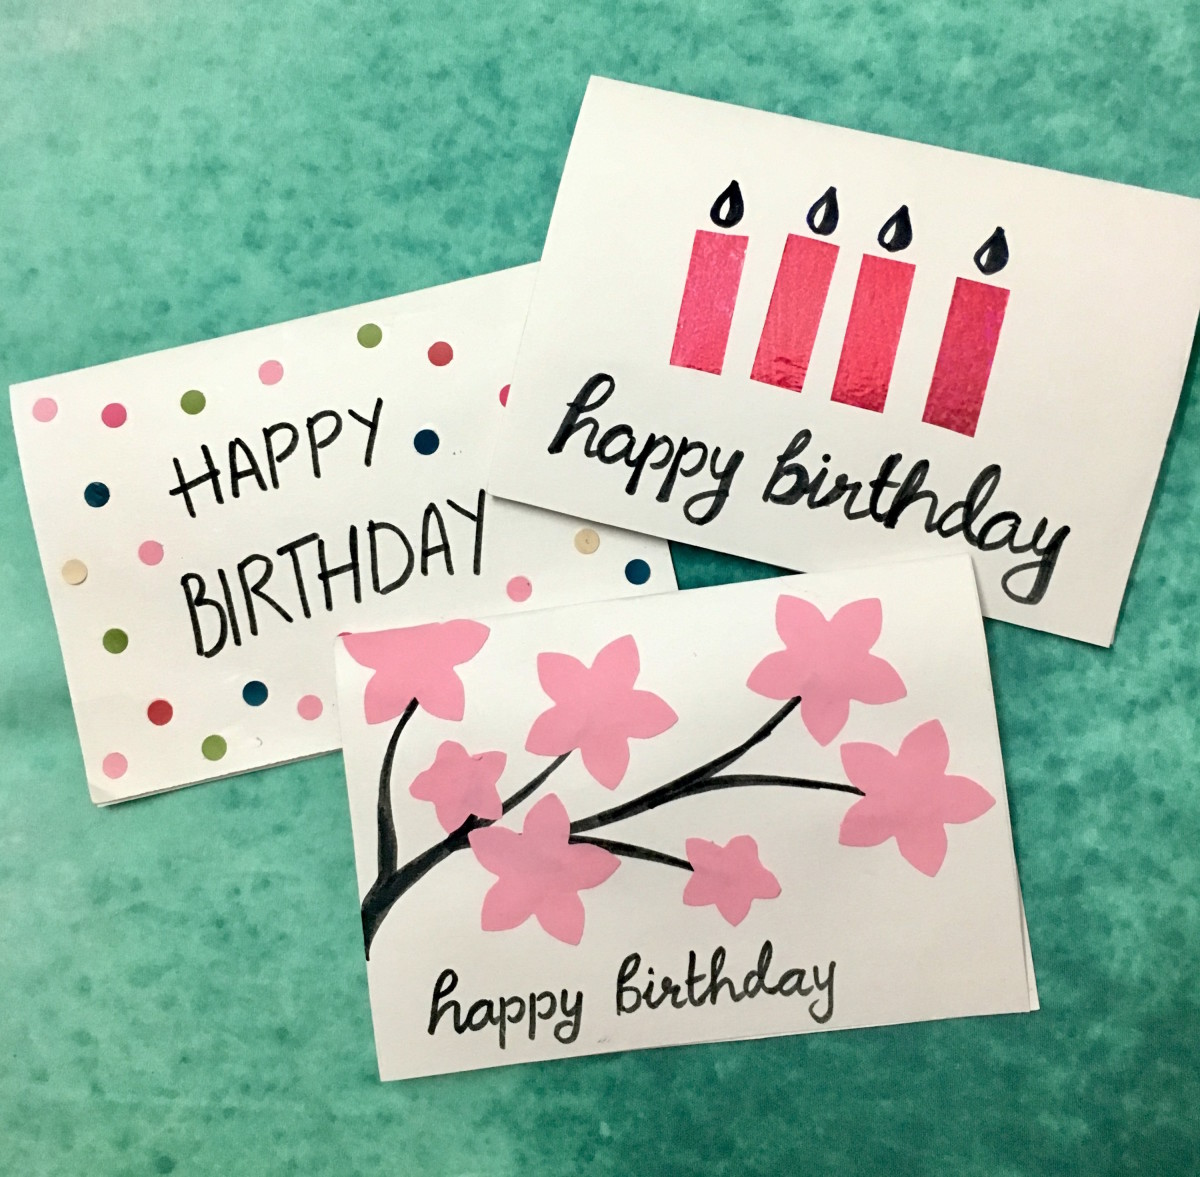 3 Easy 5Minute DIY Birthday Greeting Cards – Birthday Greetings and Cards